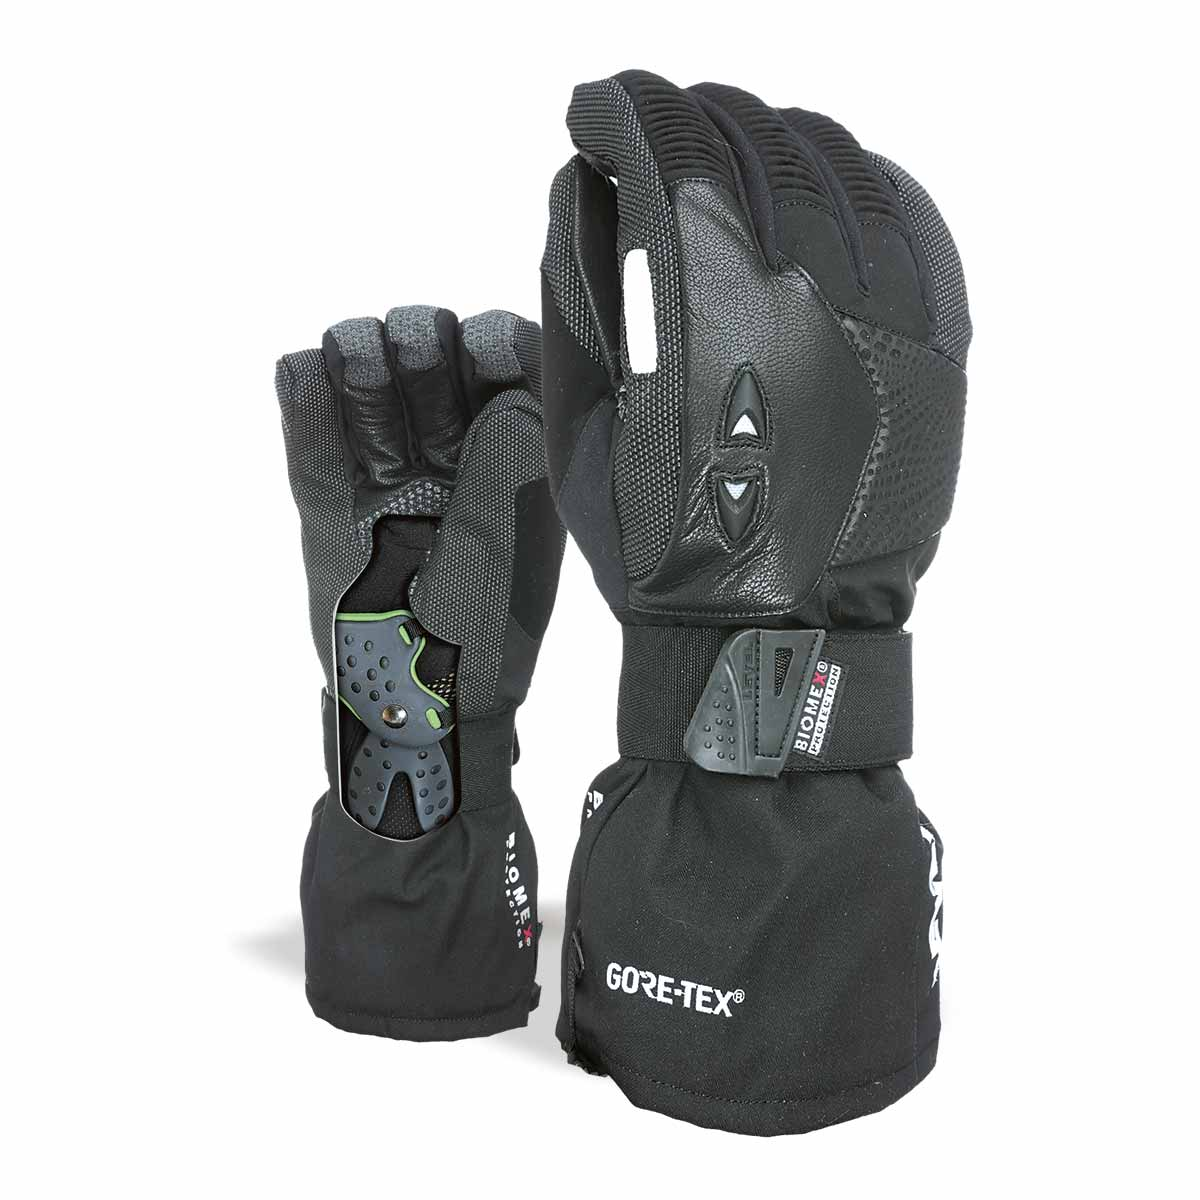 LEVEL Super Pipe Snowboard Gloves with Wrist Guards | Black